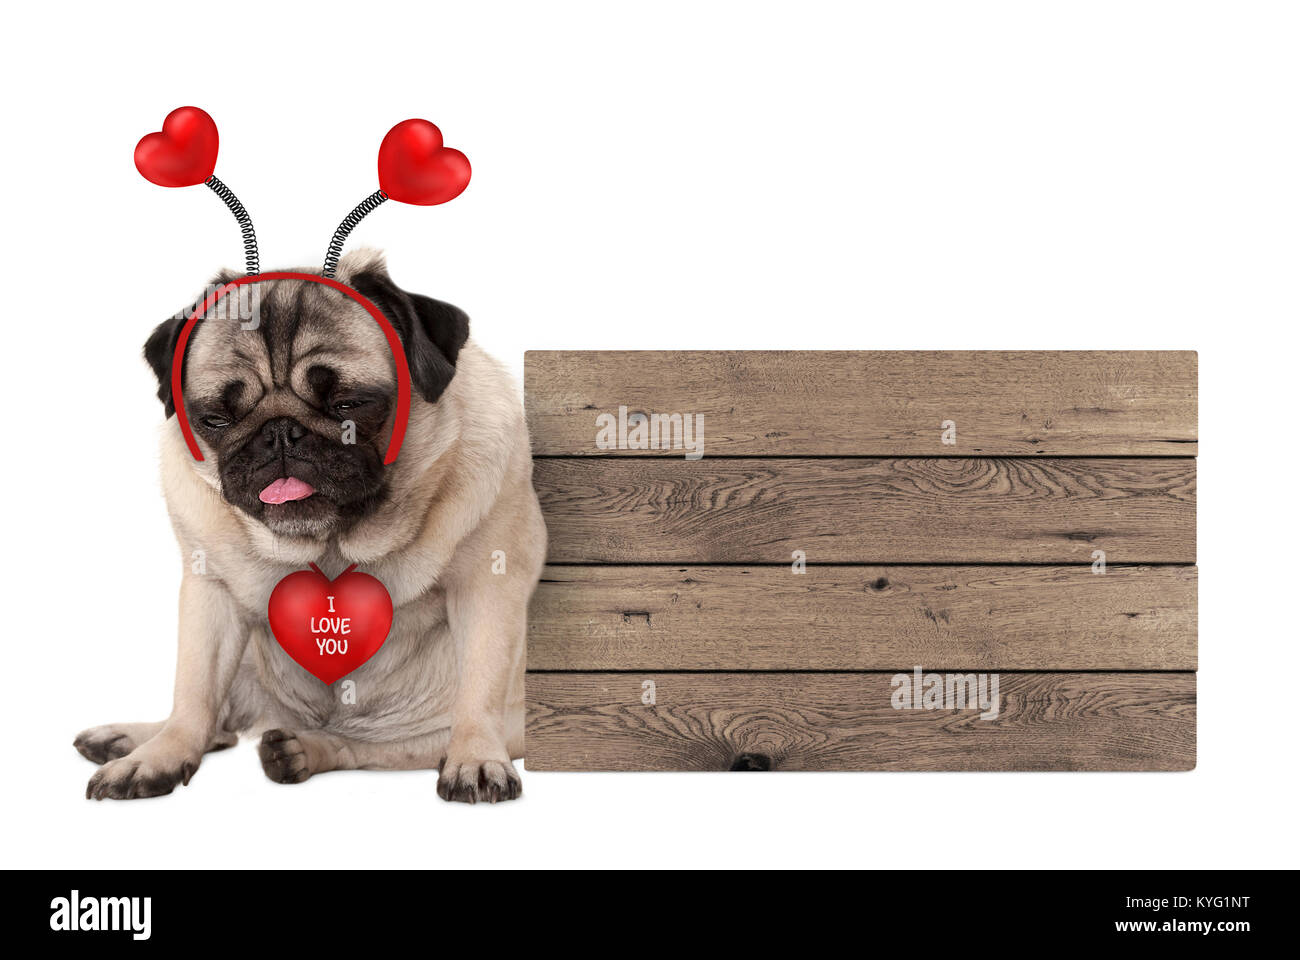 being fed up Valentine's day pug dog with hearts diadem sitting down next to wooden sign, isolated on white - Stock Image